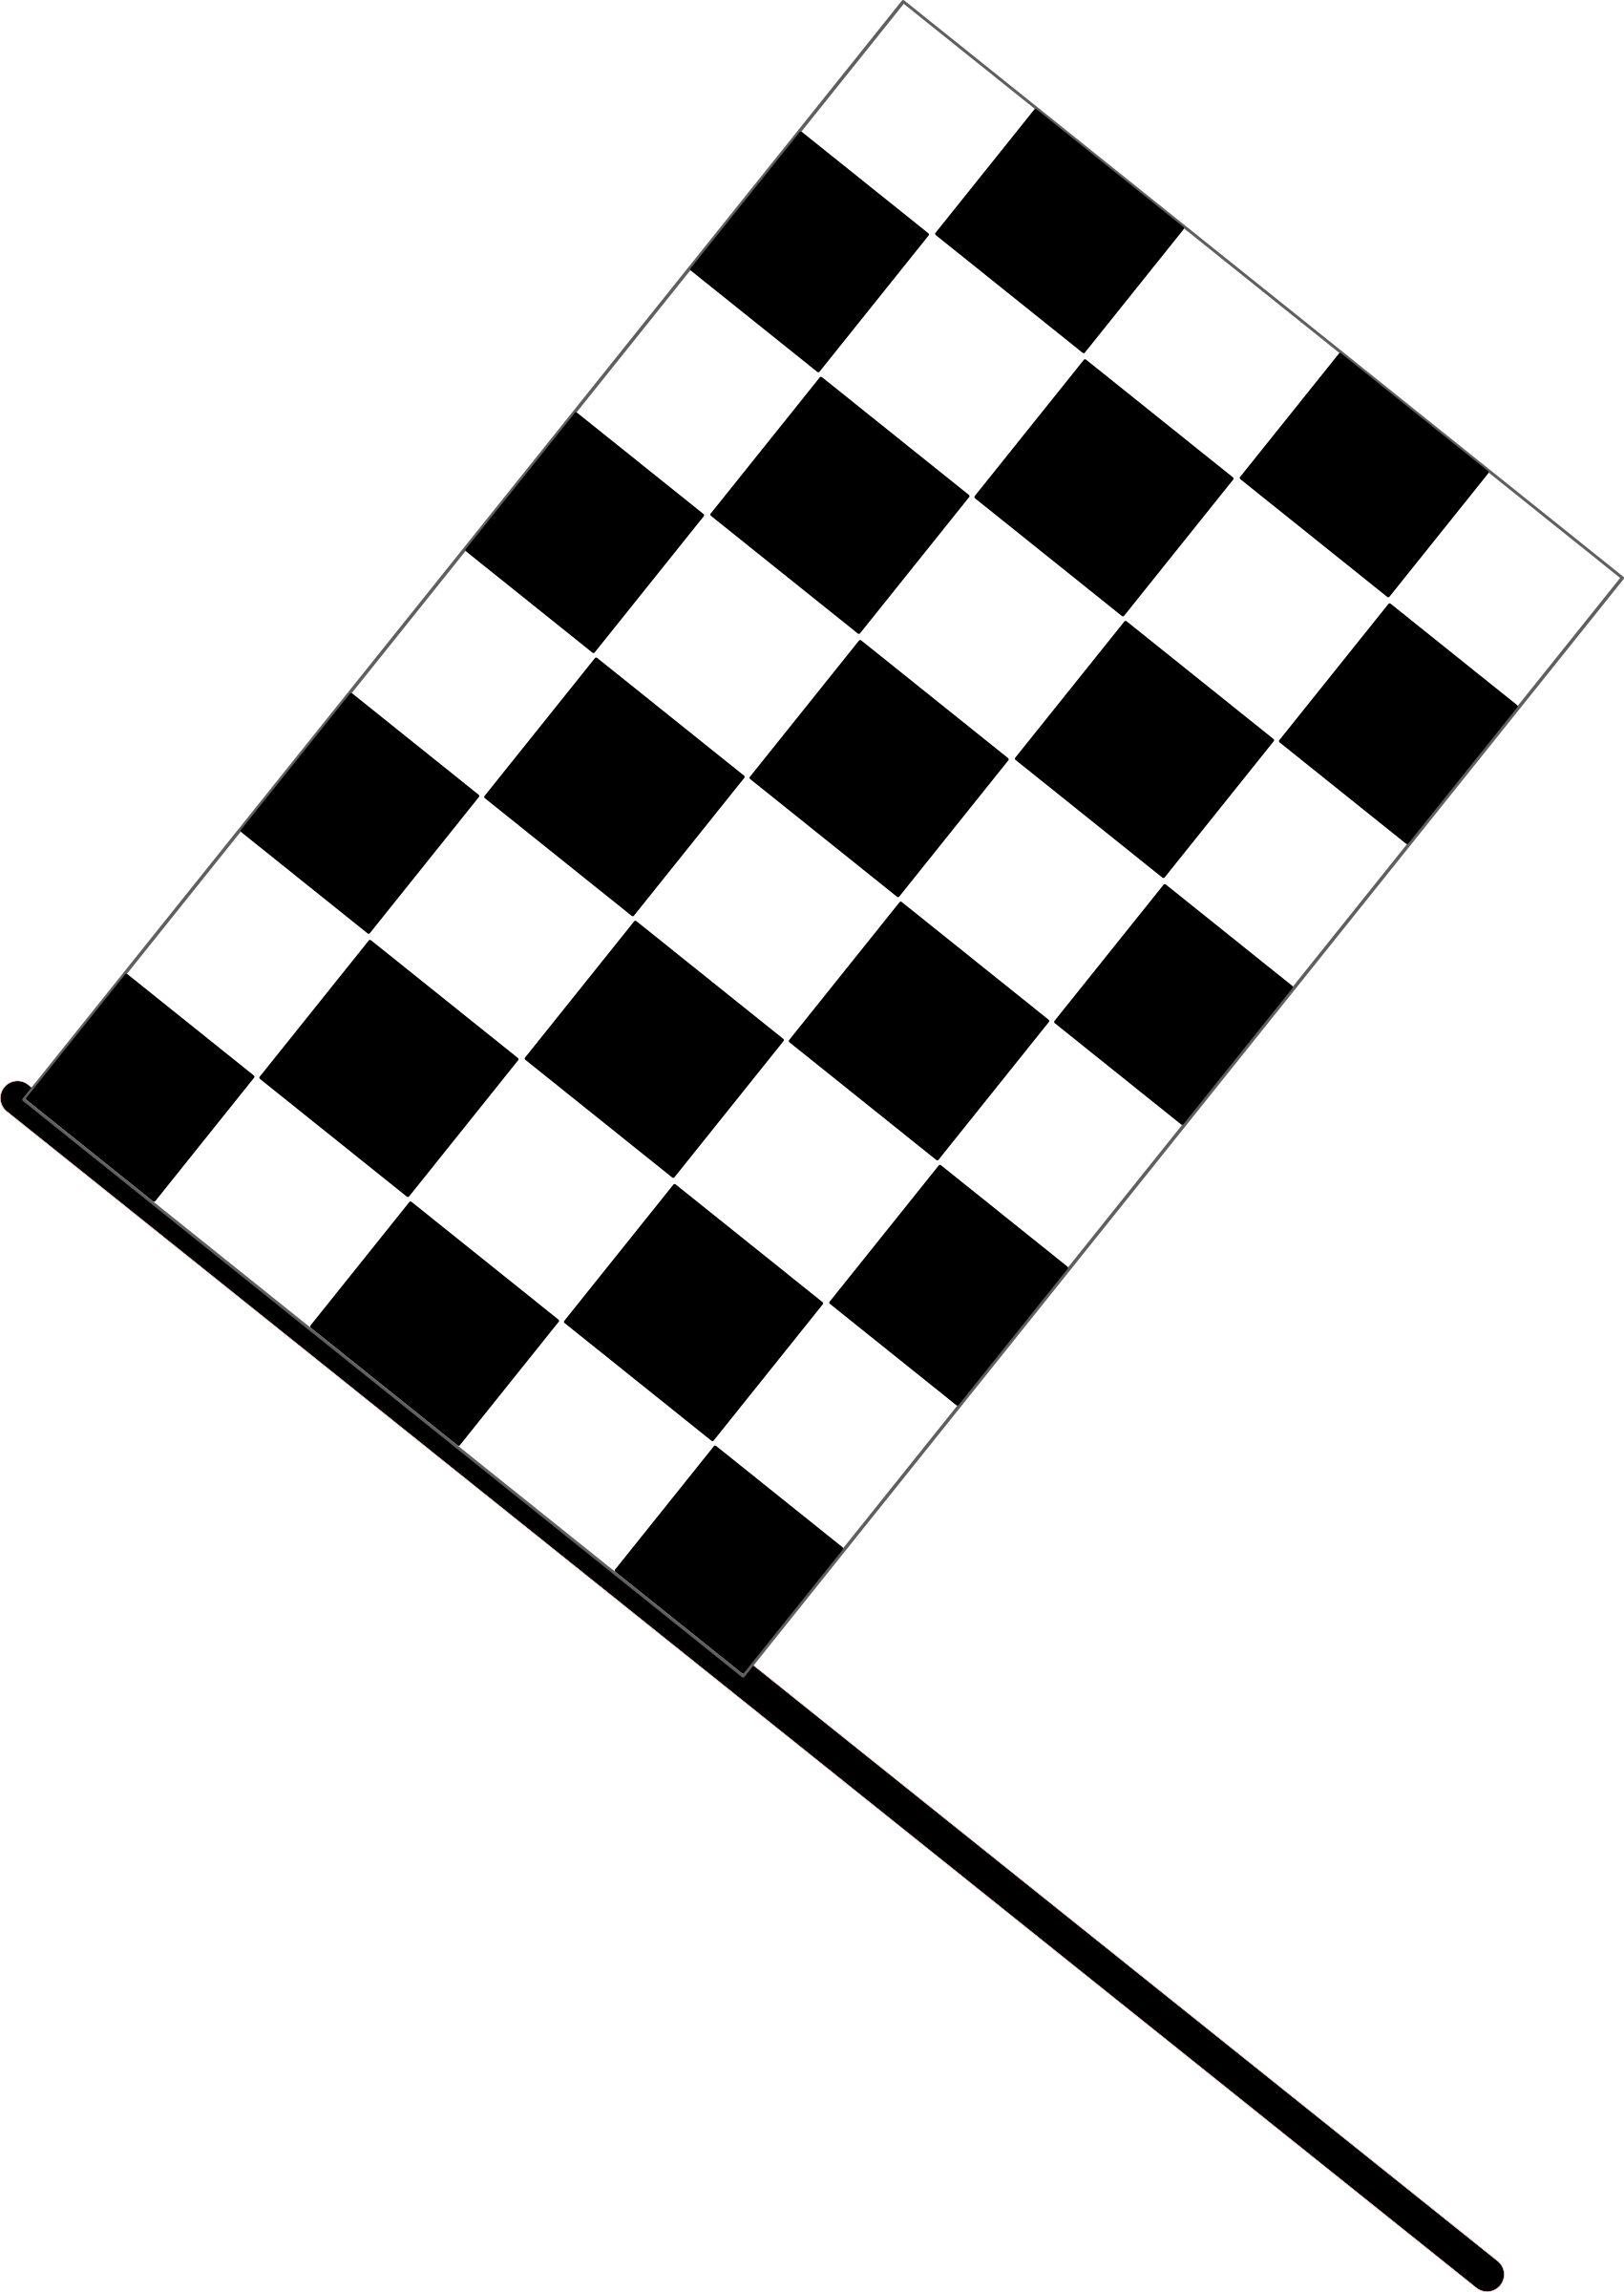 Finish clipart flag. Checkered big image png